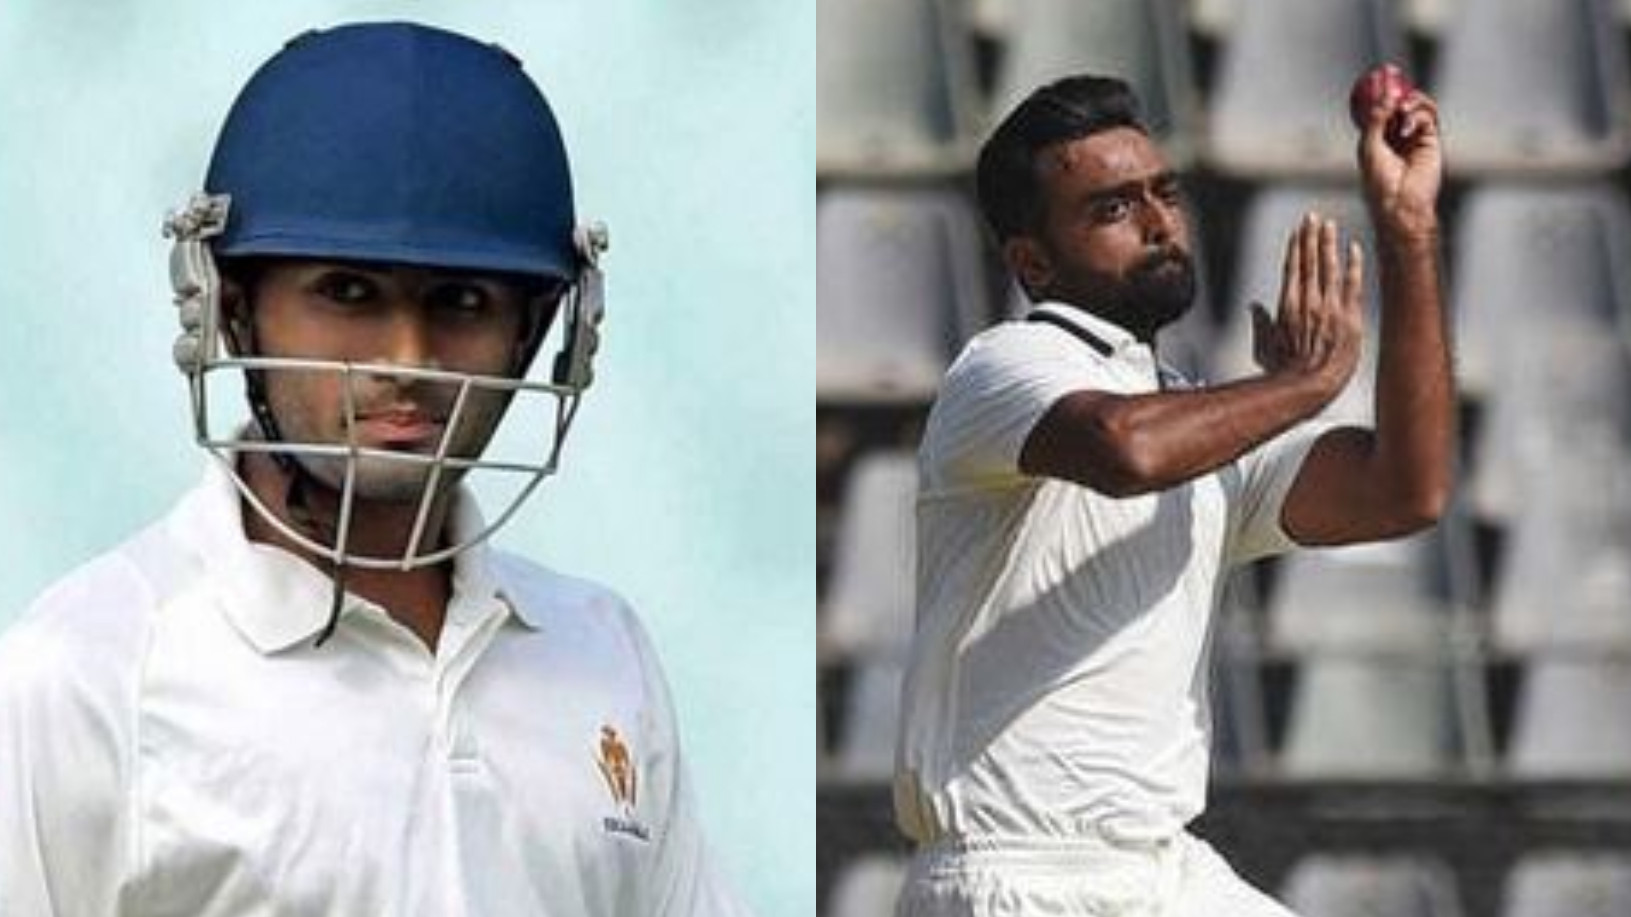 Ranji Trophy 2018-19: SF 1, Day 1- Karnataka ends day on 264/9 thanks to fifties from Shreyas Gopal, Manish Pandey and S Sharath